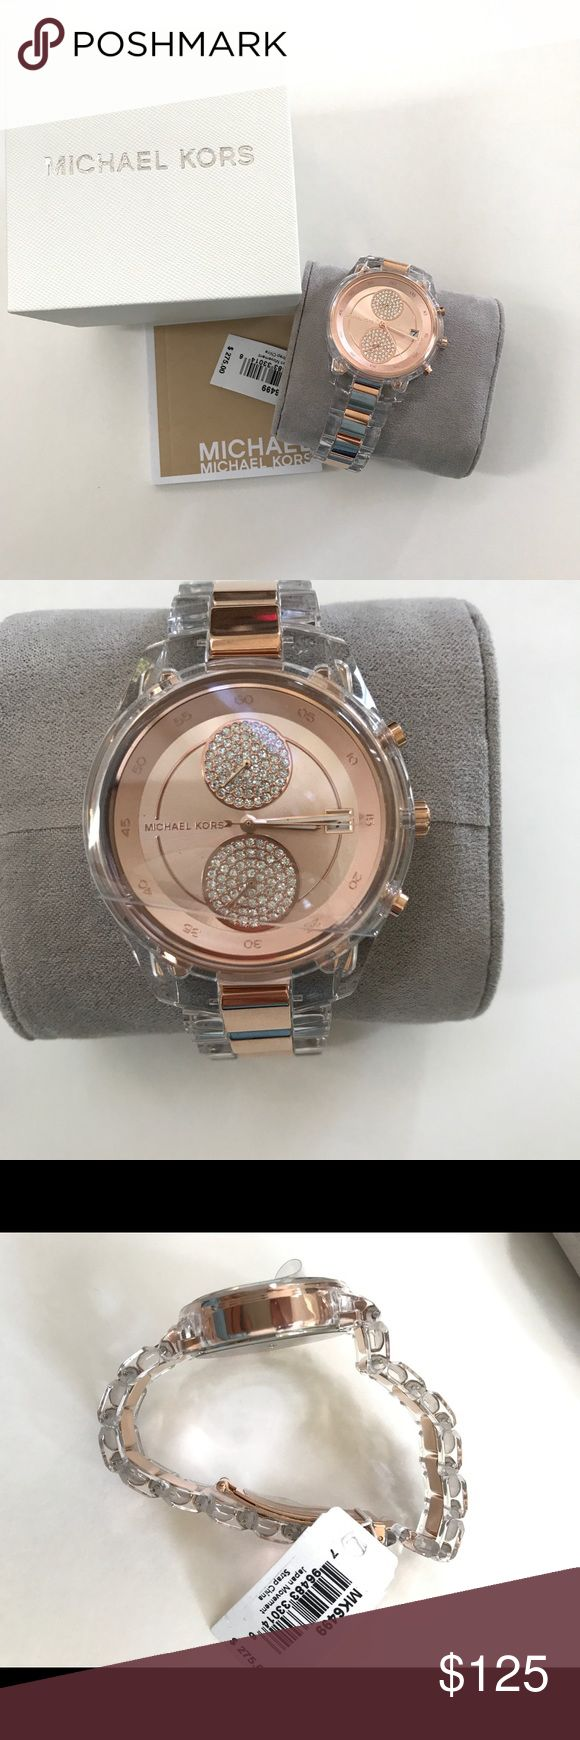 Authentic Michael Kors Women's Rose Goldtone Watch Michael Kors Women's MK6499 'Briar' Rose gold-tone stainless steel watch. clear  acetate Dial: Rose gold-tone chronograph Subdials: Two - 60 minutes and 60 seconds Calendar: Date window at the 3 o'clock position Bracelet: Clear acetate links with rose gold-tone stainless steel inserts  Movement: Quartz Water resistance: 5 ATM/50 meters/165 feet Case measurements: 40 mm wide x 40 mm long x 11 mm deep Bracelet measurements: 20 mm wide x 9…